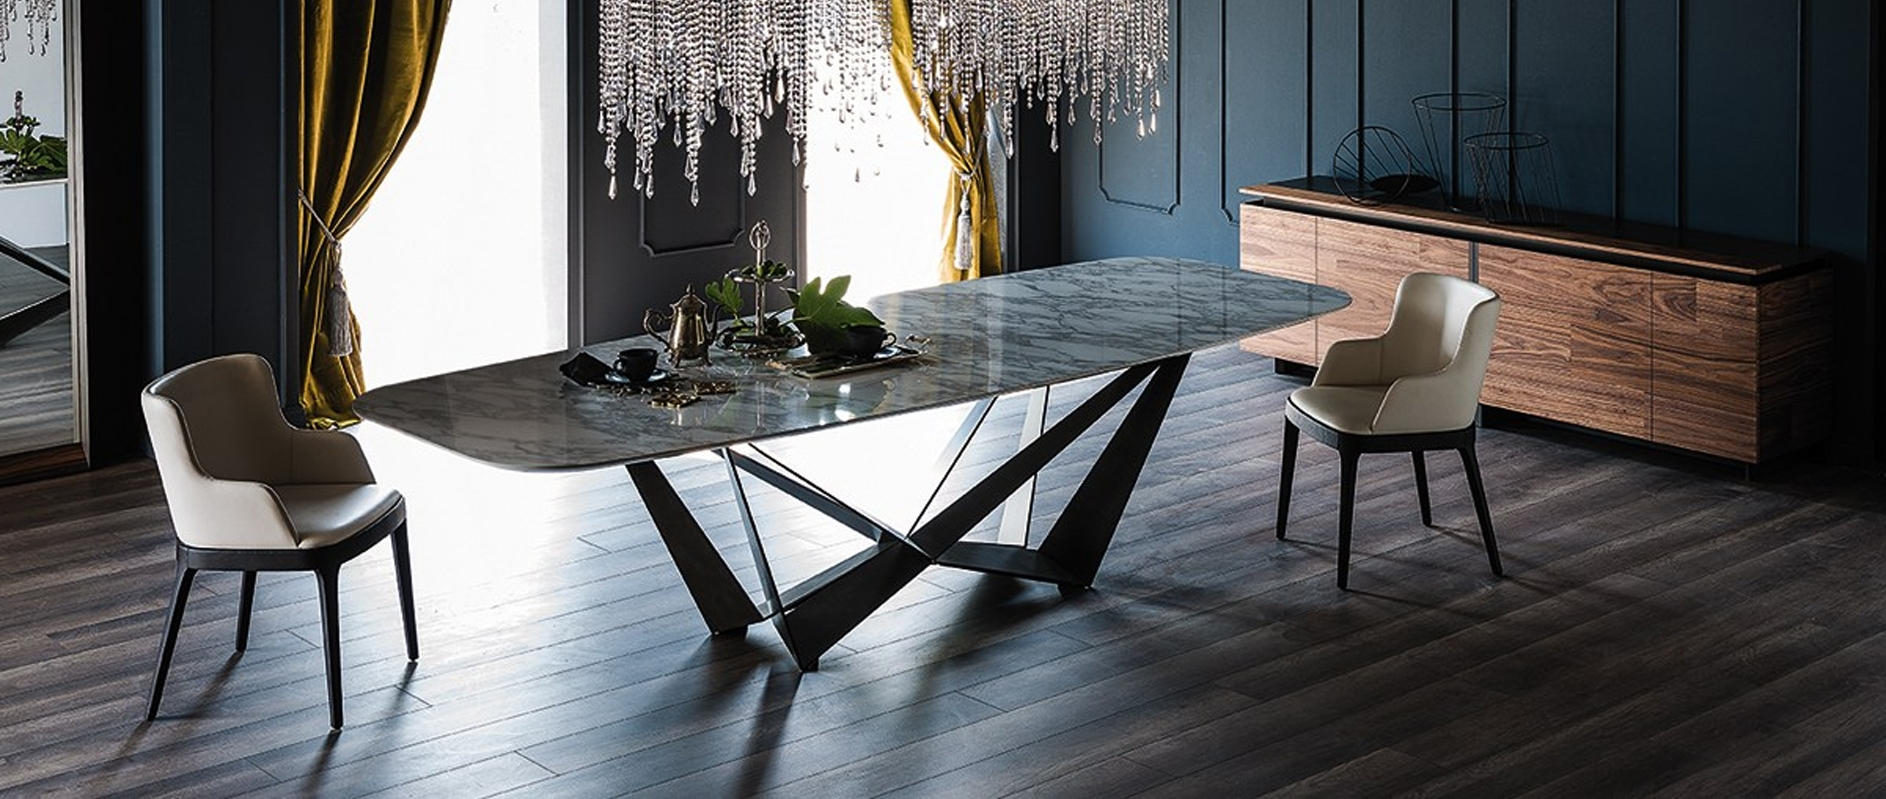 Small Dining Table Set For 4, Dining Room Contemporary Glass Dining Table Set Small Modern Dining Layjao